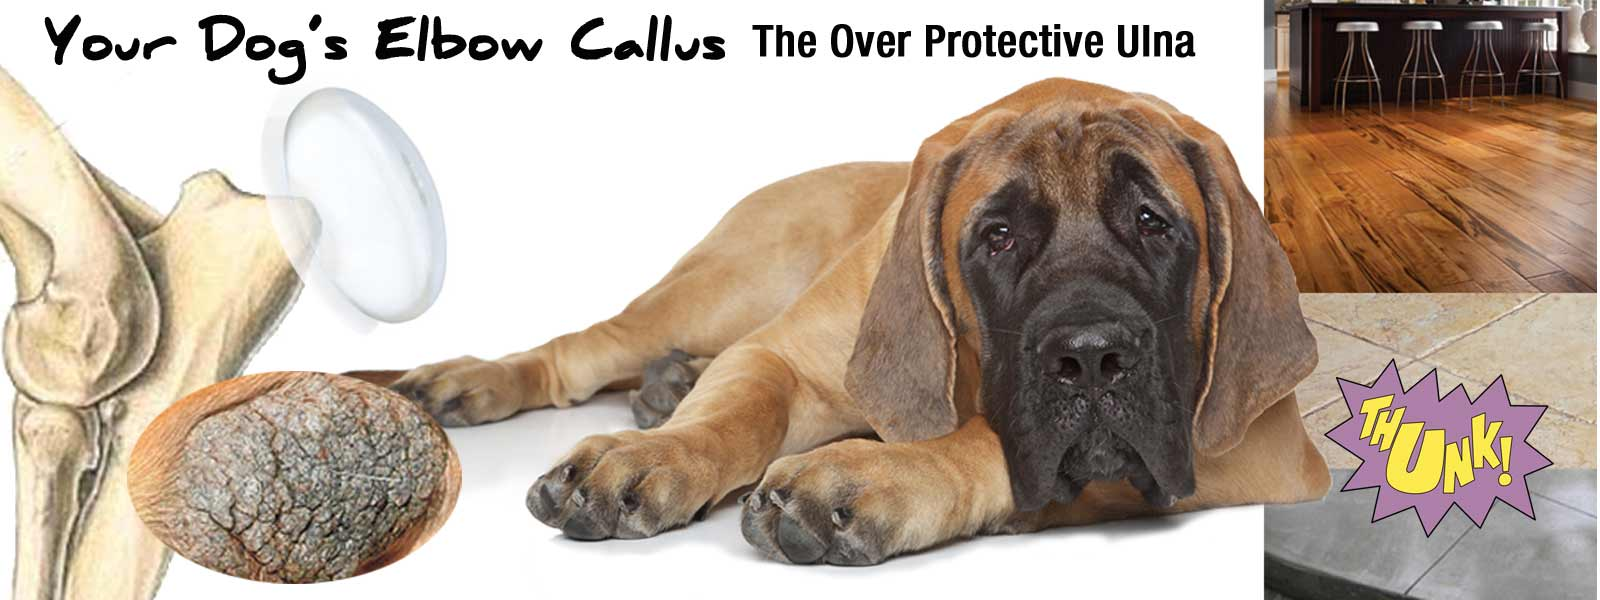 Canine elbow calluses